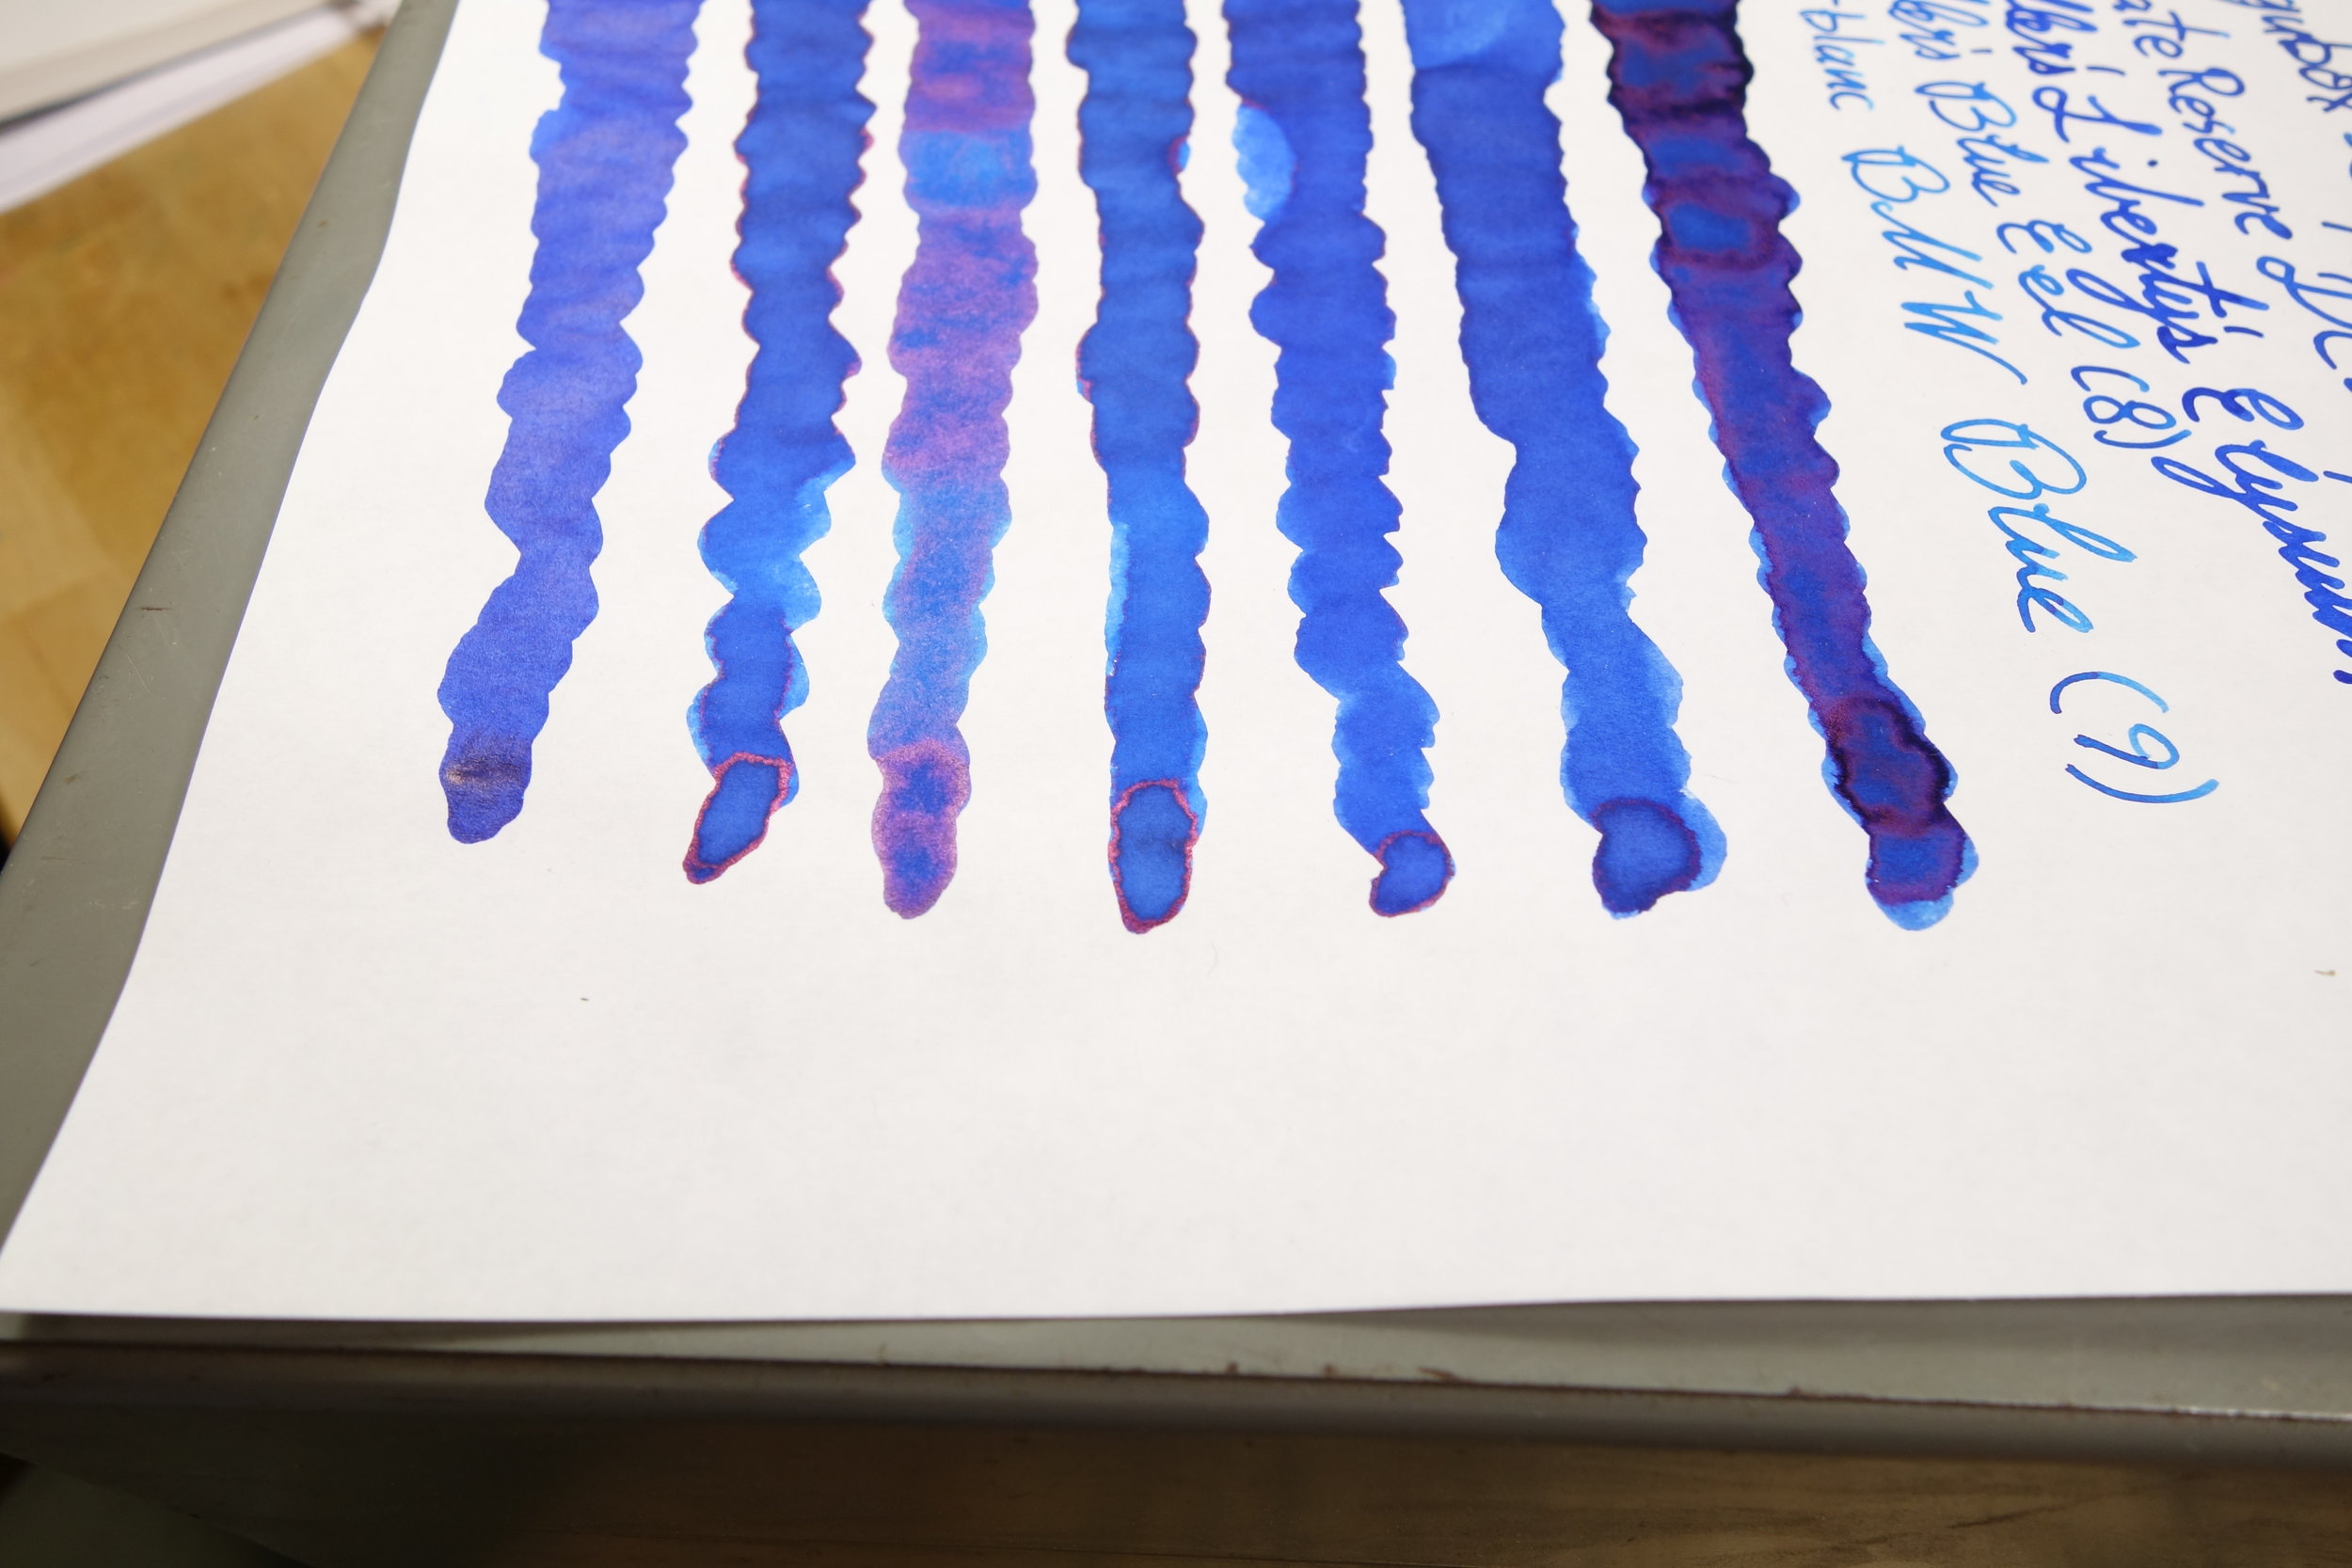 Sheen on Tomoe River (Swatches)